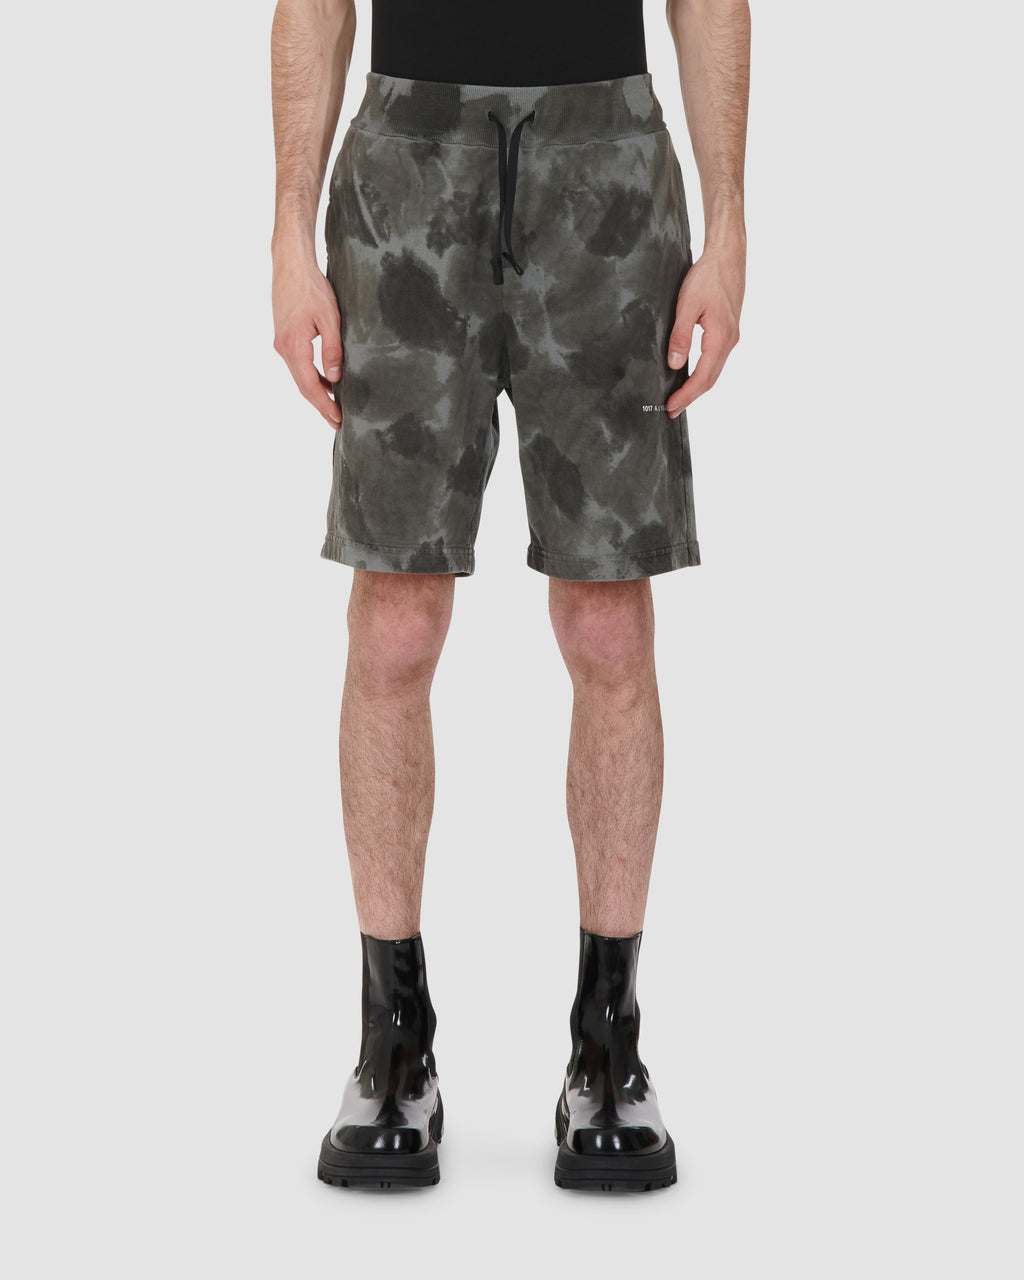 1017 ALYX 9SM | SHORTS W PRINT | Pants | BLACK, Google Shopping, Man, MEN, Pants, S20, S20 Drop II, SHORTS, Trousers